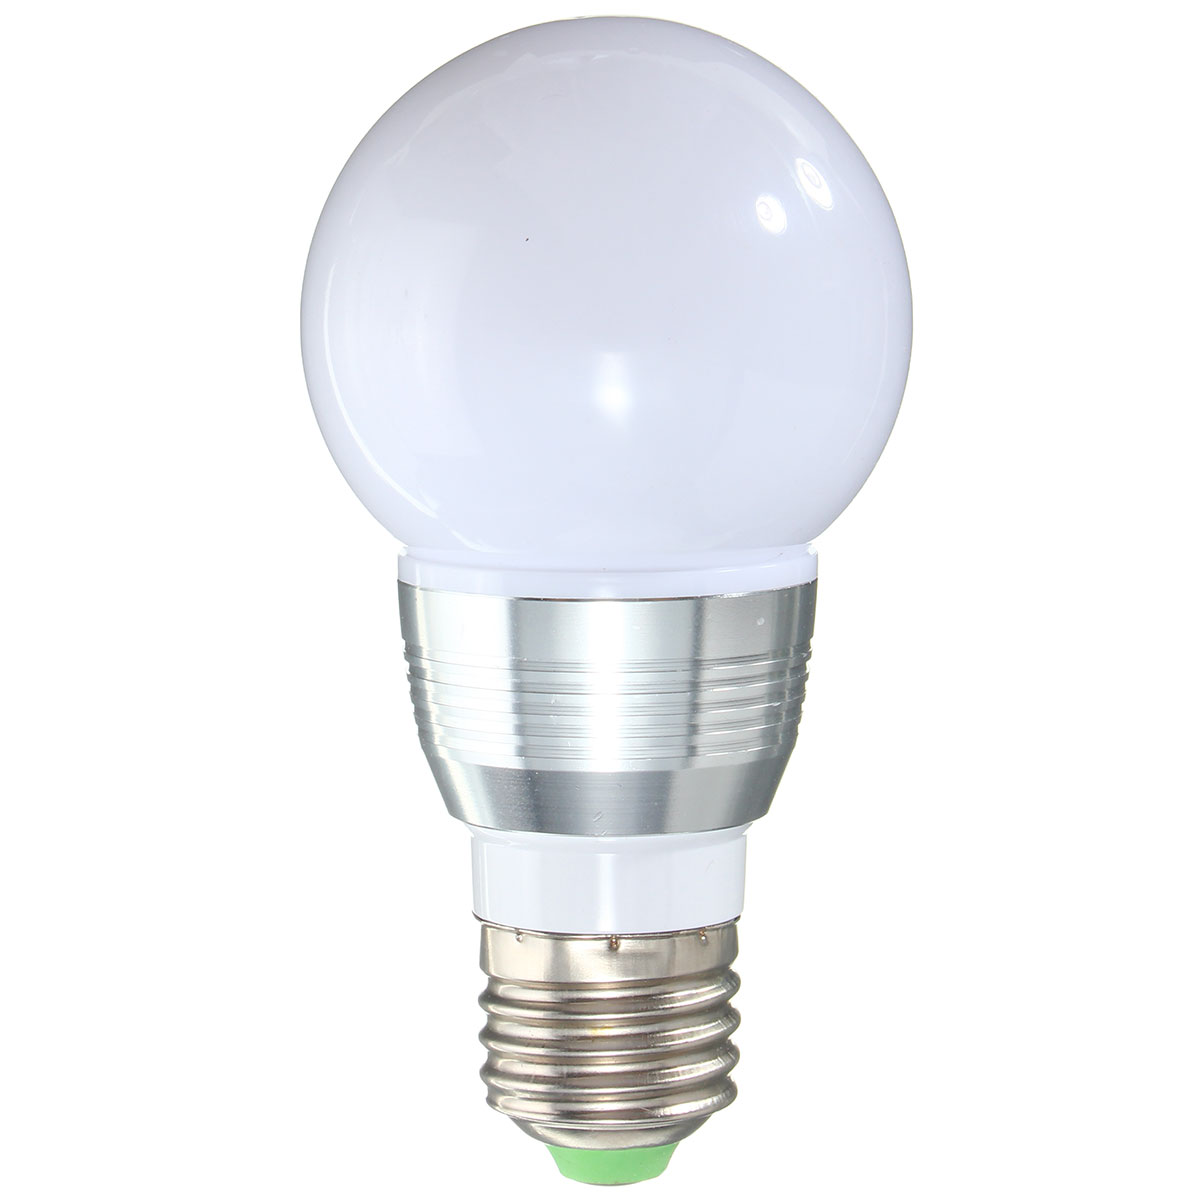 E27 E14 Gu10 3w Dimmable Remote Control Rgb Color Change Led Lamp Light Bulb 85 265v Alex Nld